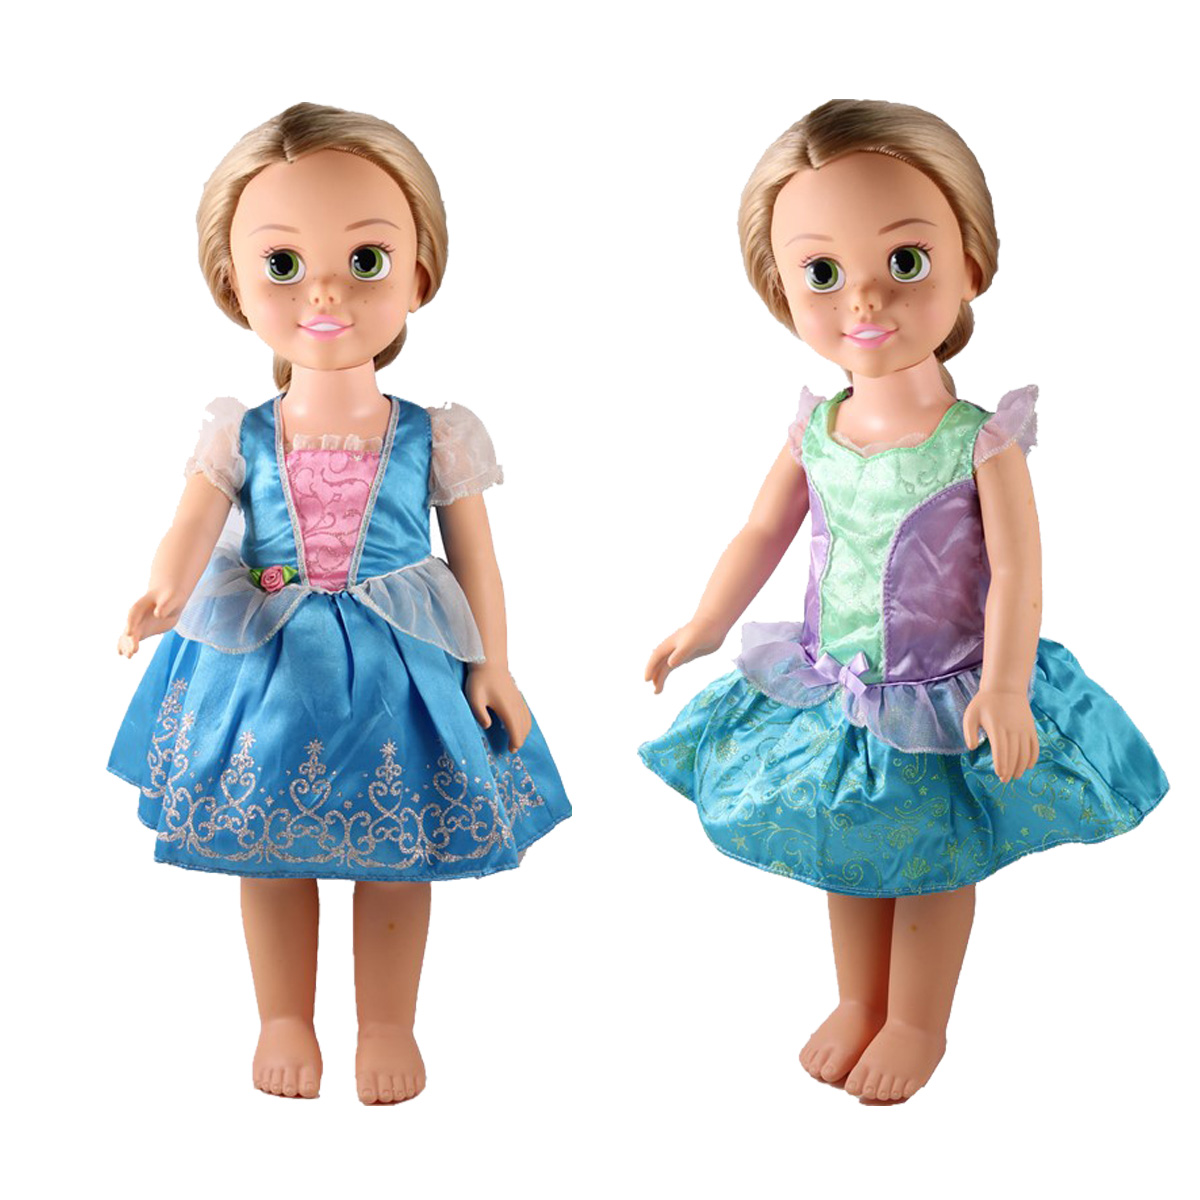 Blue Flower Ruffle Apron 18 in Doll Clothes Fits American Girl